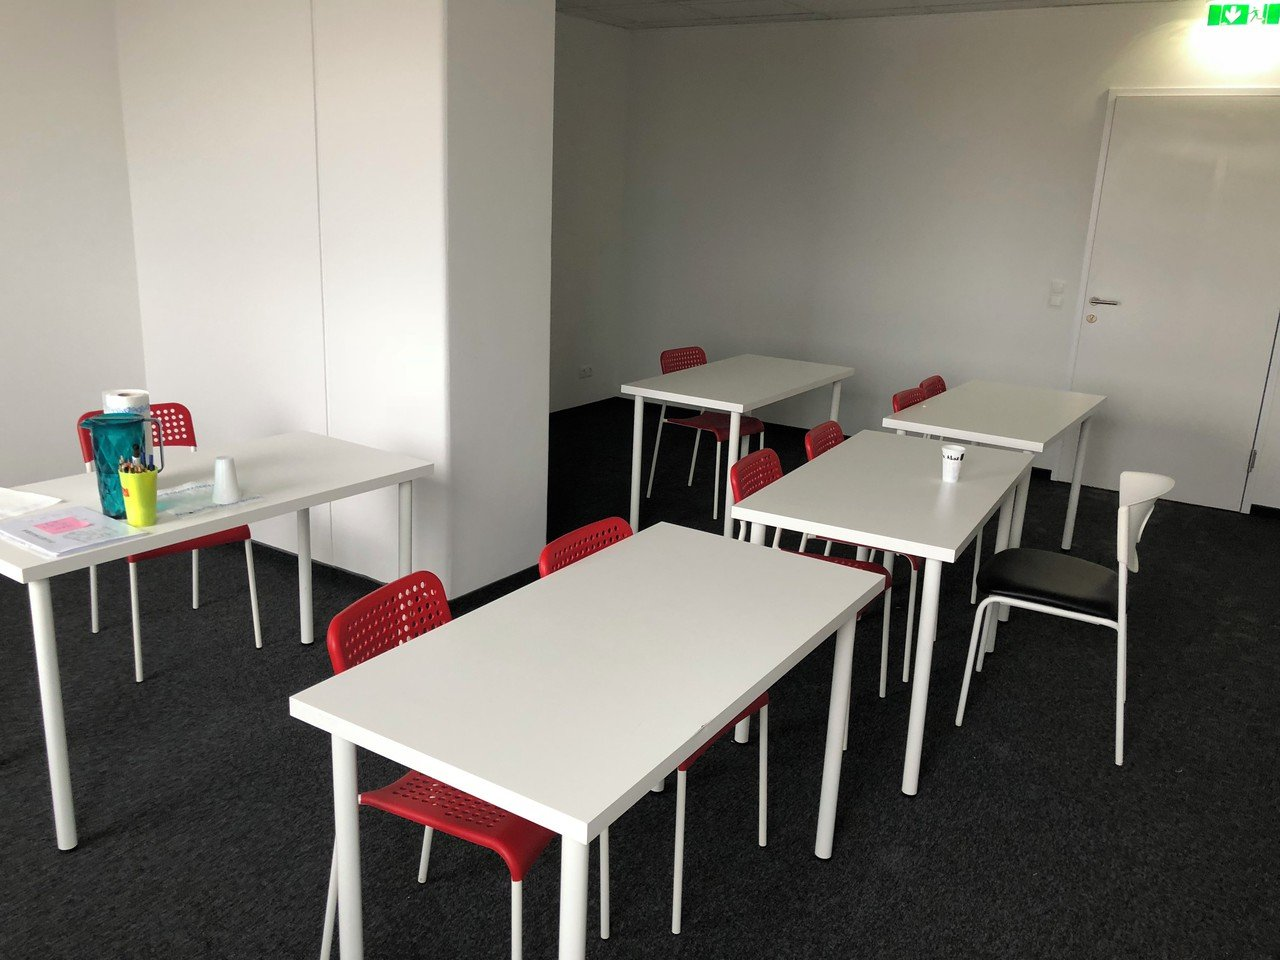 Vienna  Meeting room Brainobrain smART space image 1